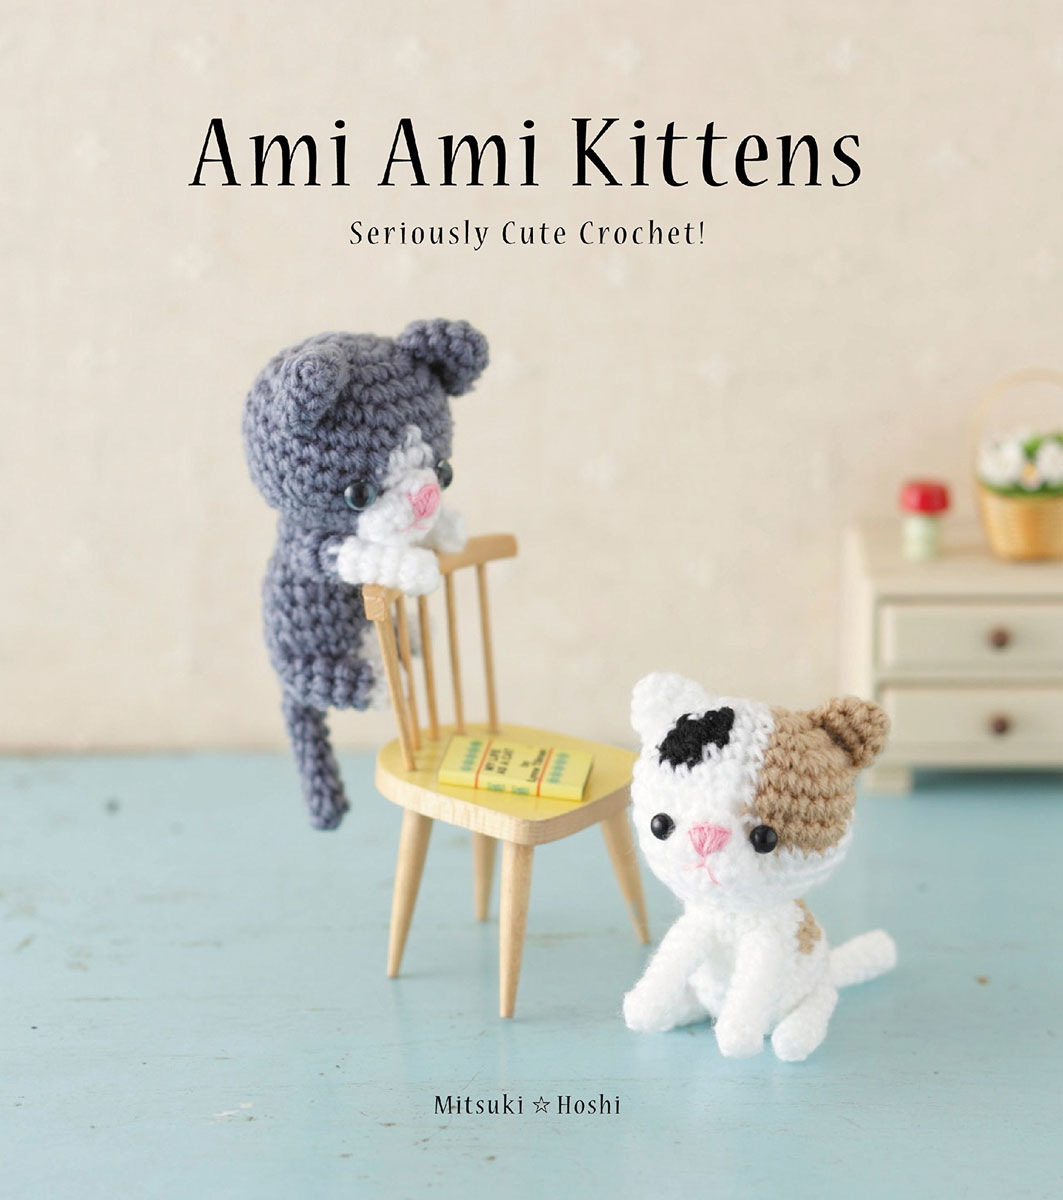 Ami Ami Kittens: Seriously Cute Crochet! irresistible